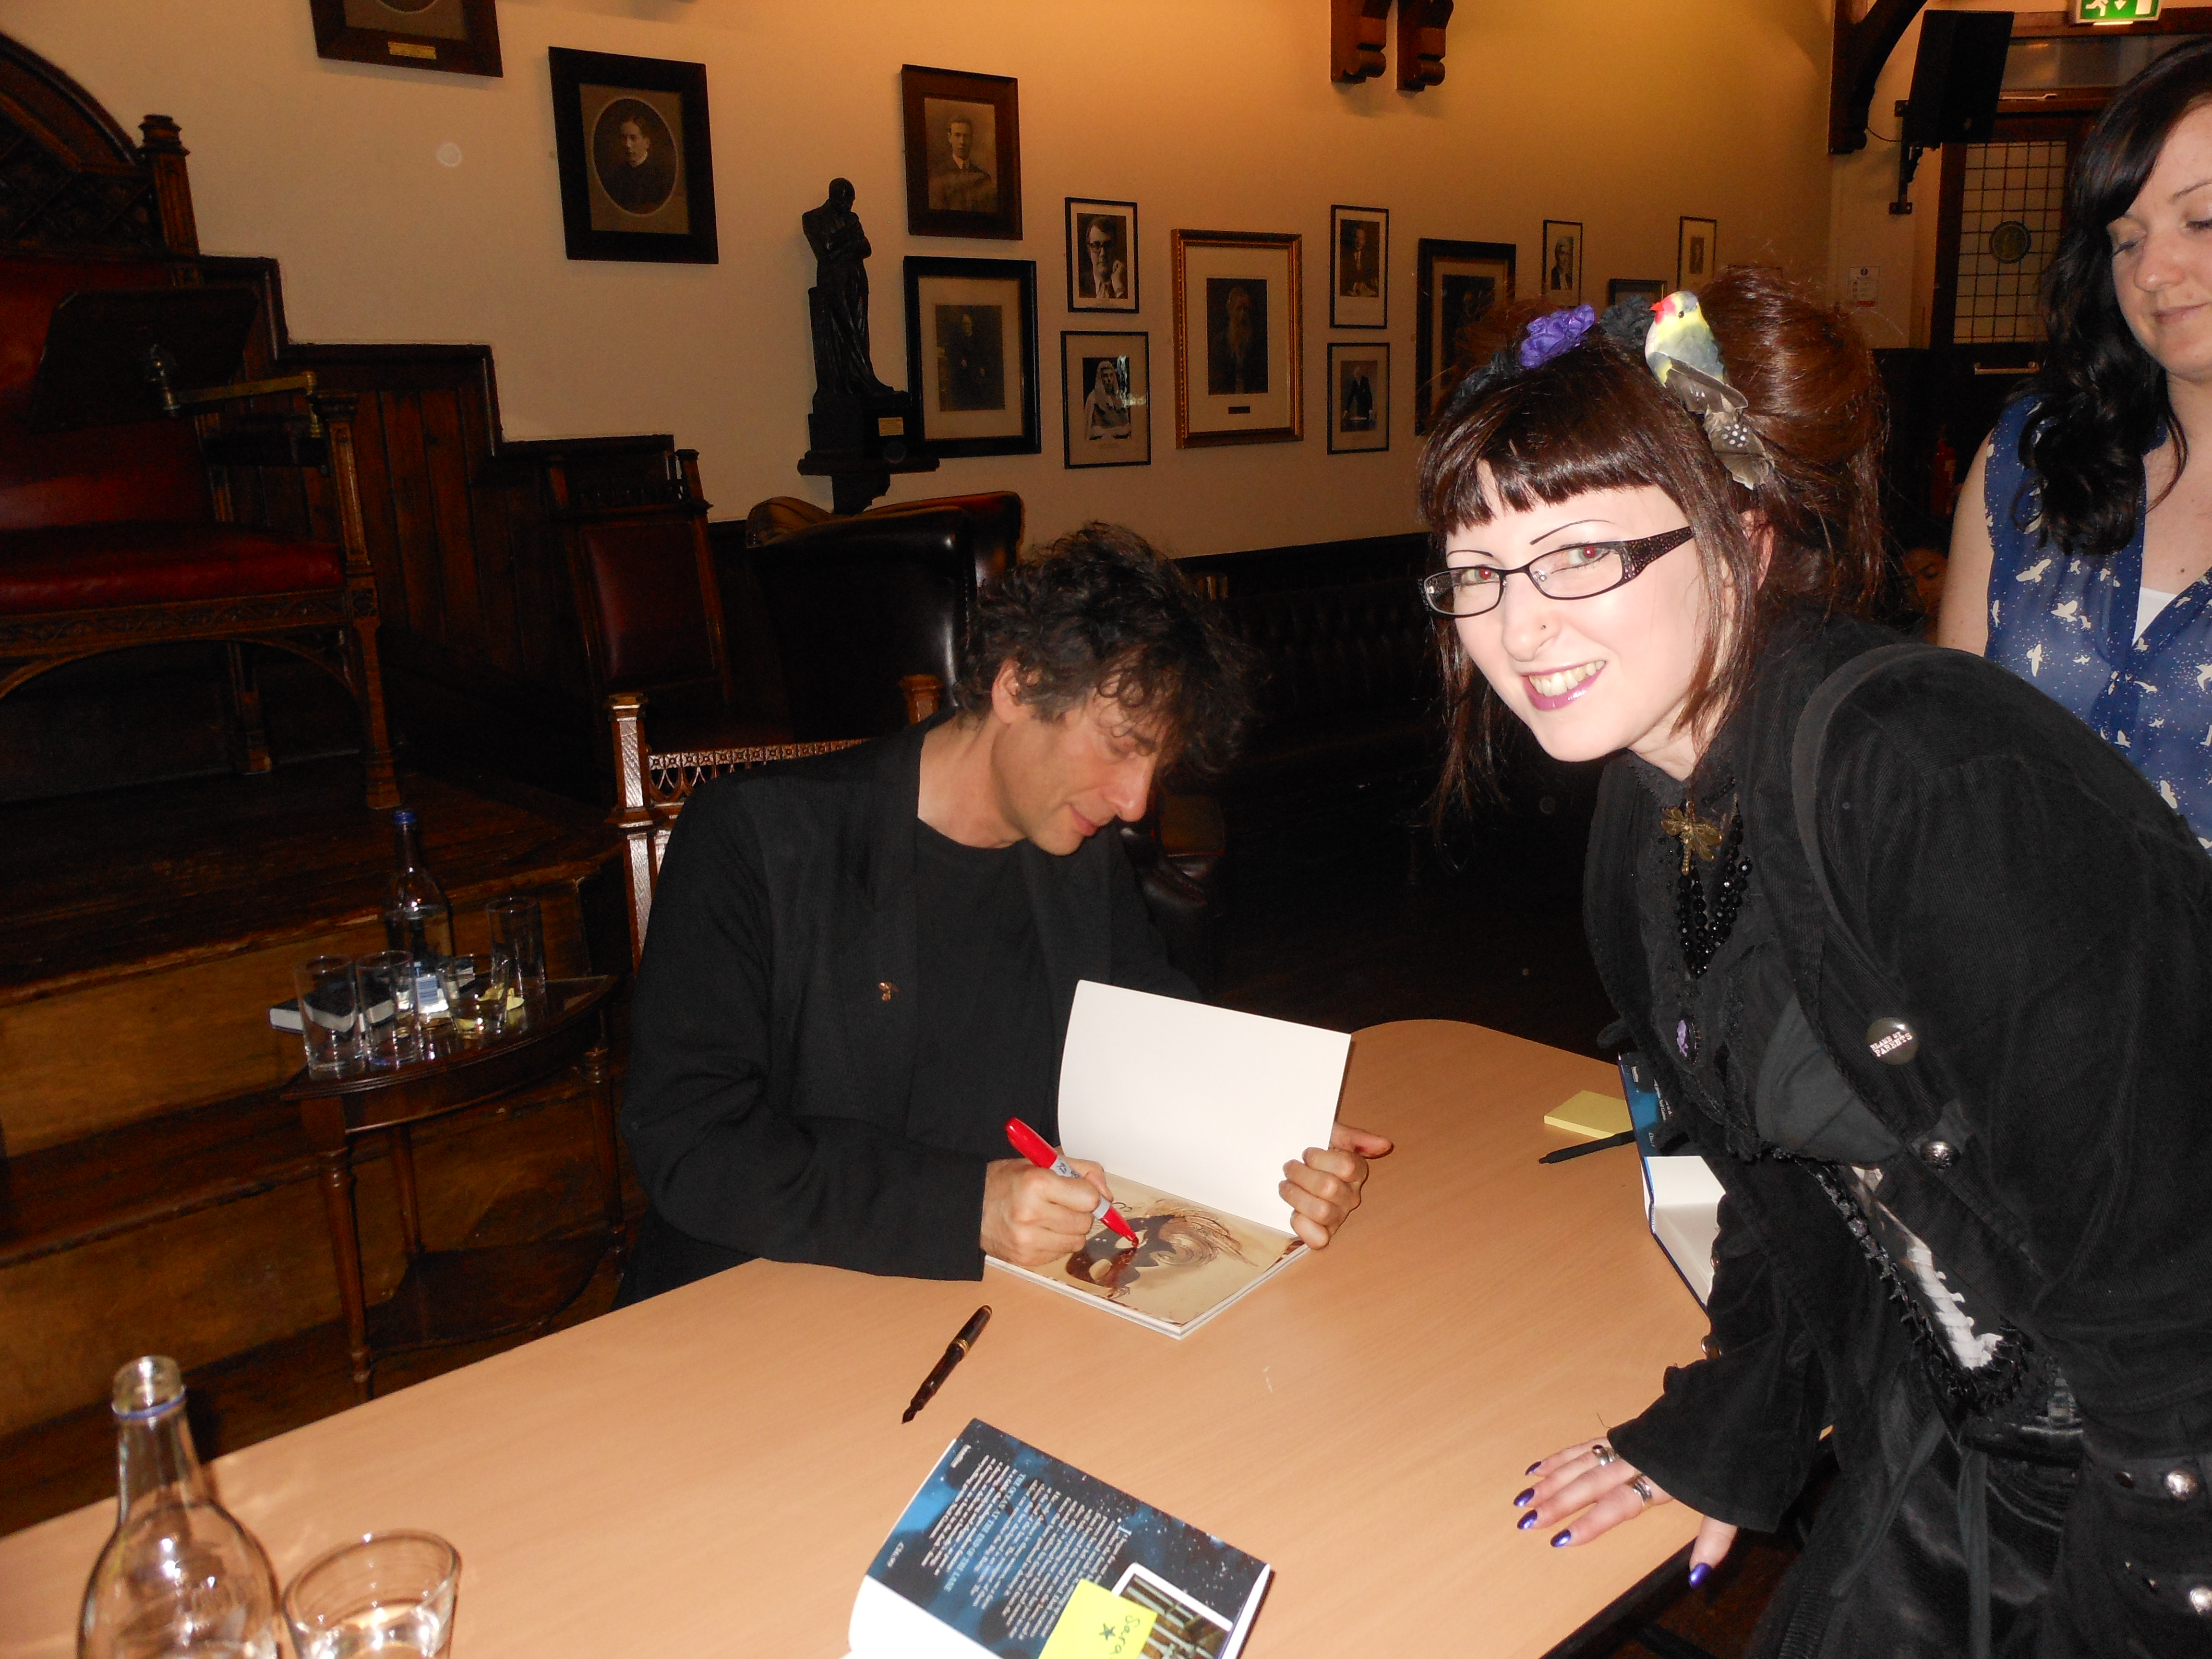 Me meeting Neil Gaiman at the Cambridge Union Society on Saturday 17th June 2013